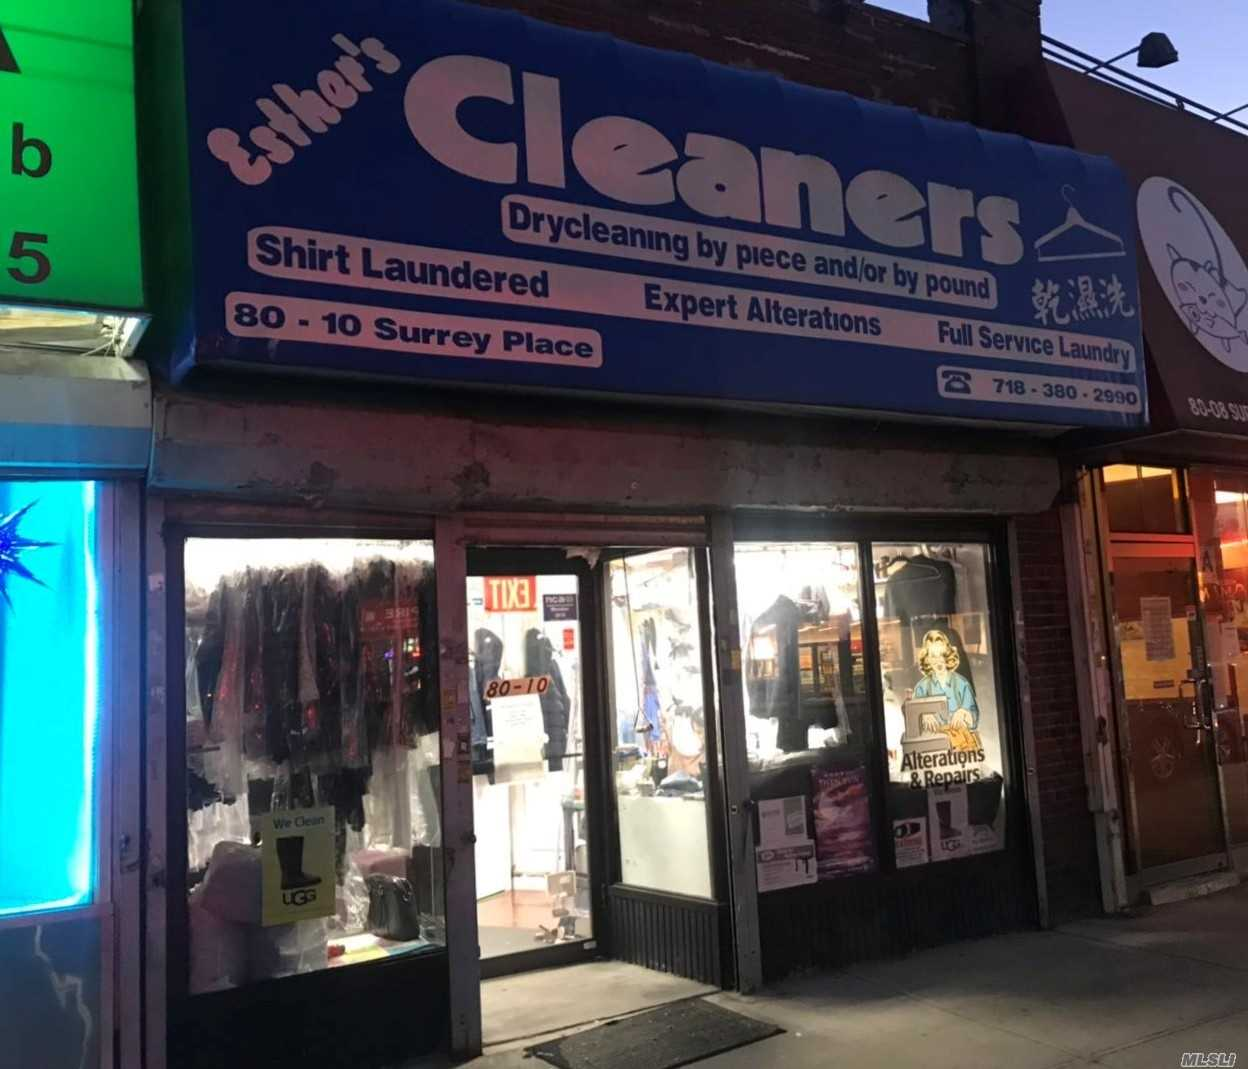 Dry Cleaner Busy Business.Business Has Been Established For The Past 20 Yrs. New Lease Going To Be 5 Yeas +5 Years Option.